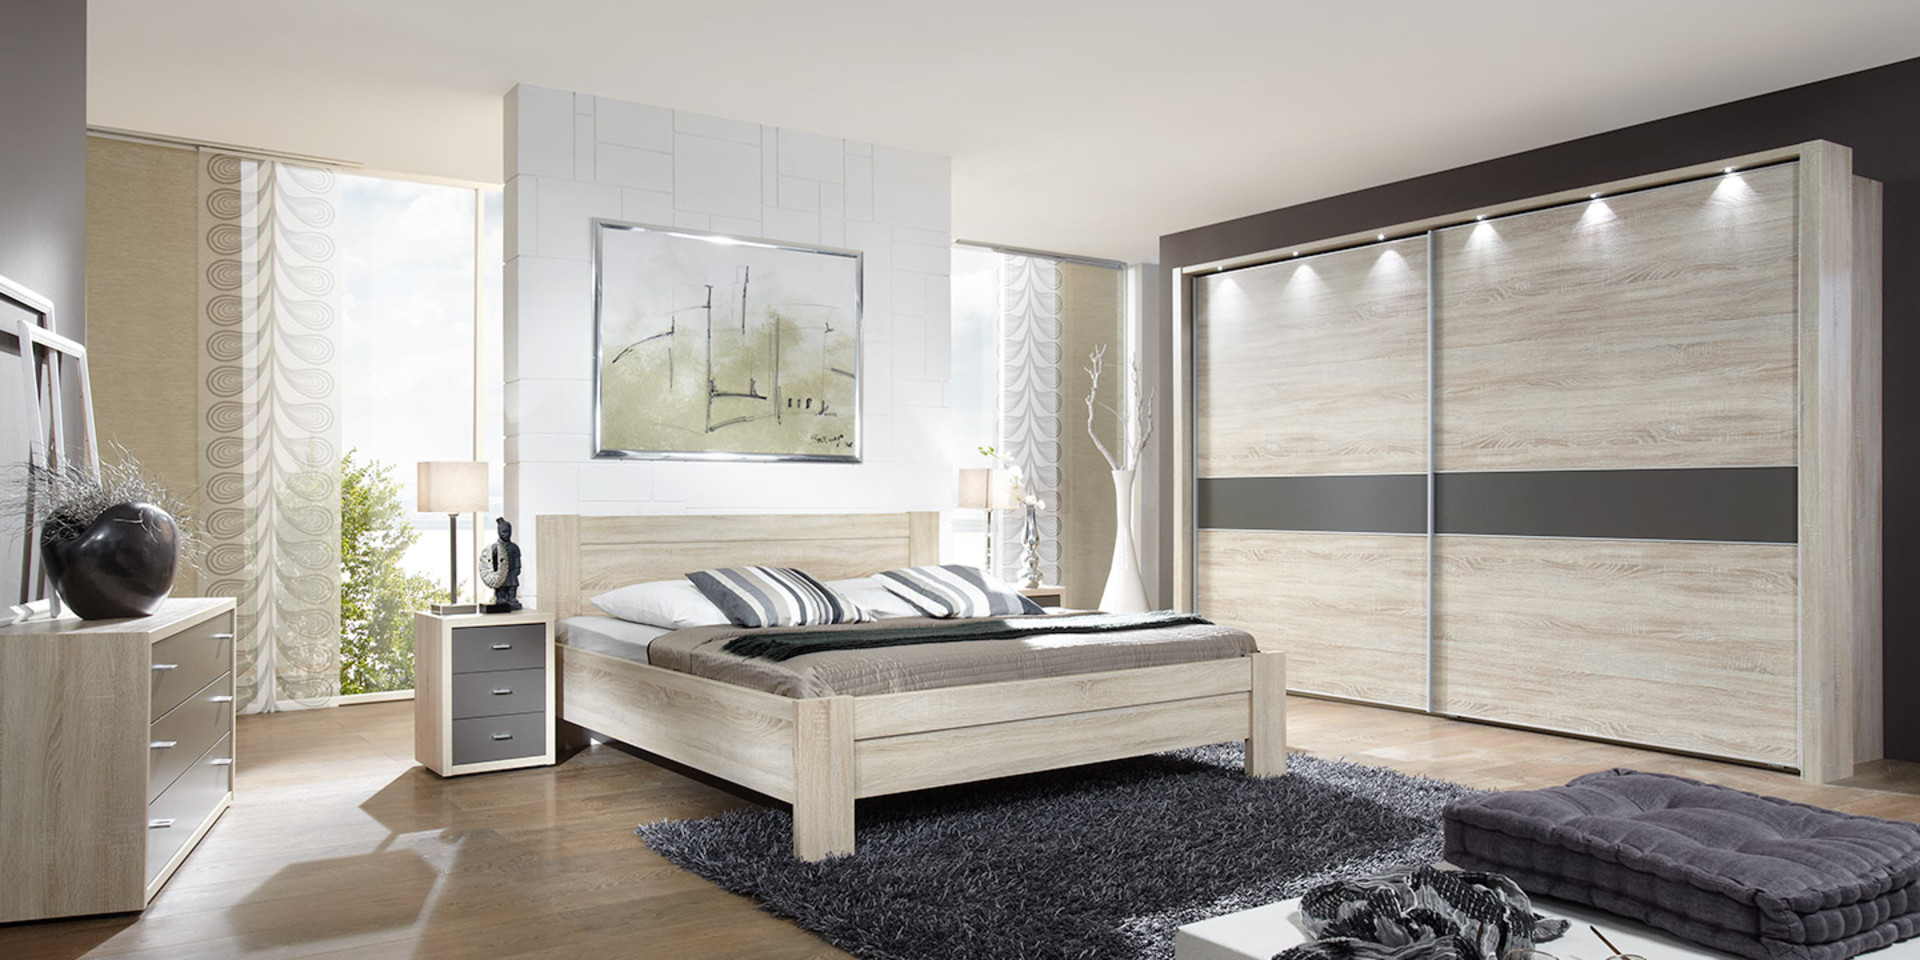 moderne wohnzimmerdecke mit holz. Black Bedroom Furniture Sets. Home Design Ideas